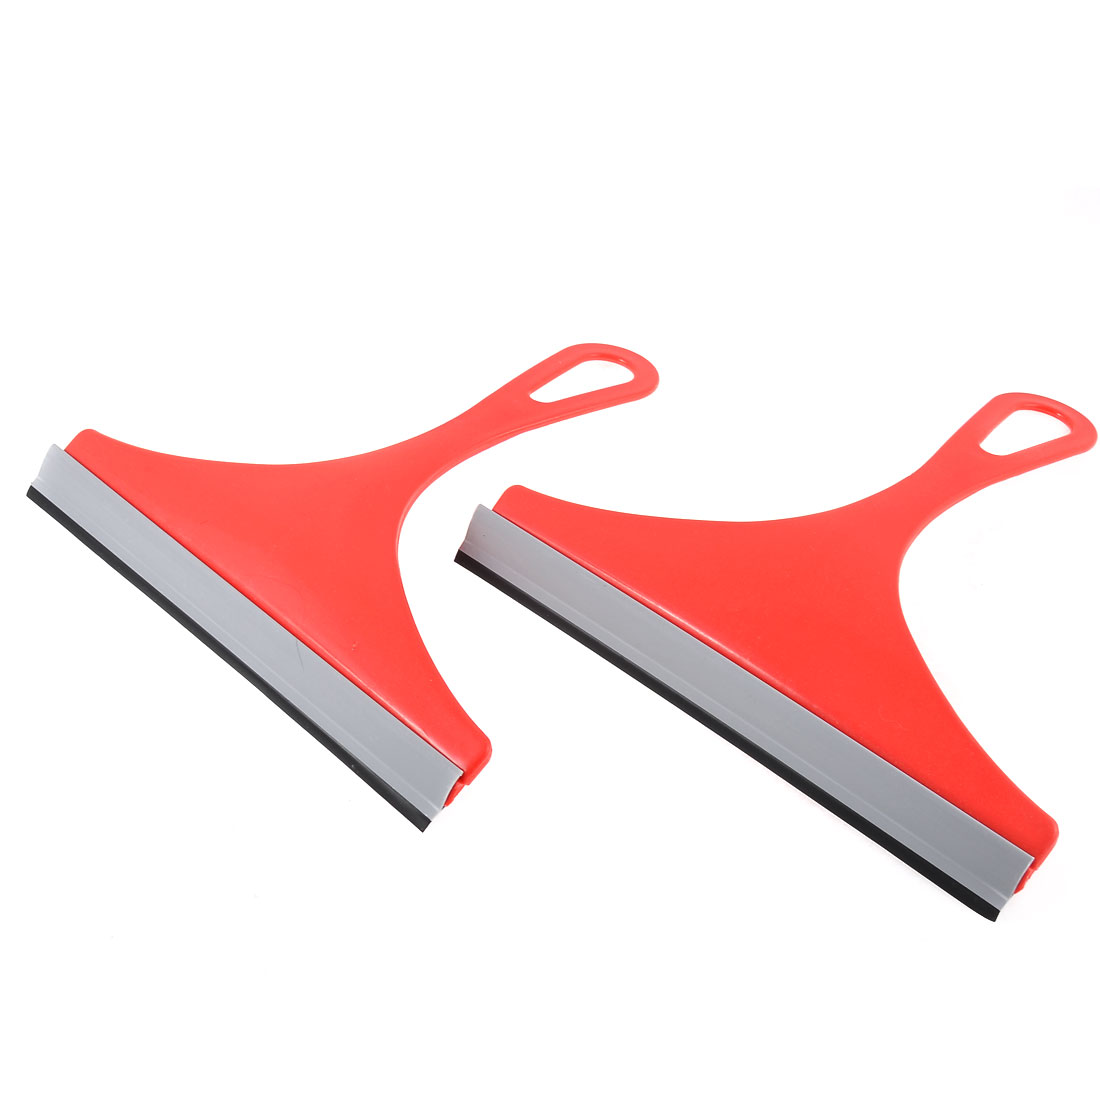 Car Vehicle Window Glass Mirror Brush Cleaner Scraper Wiper Squeegee Red 2pcs